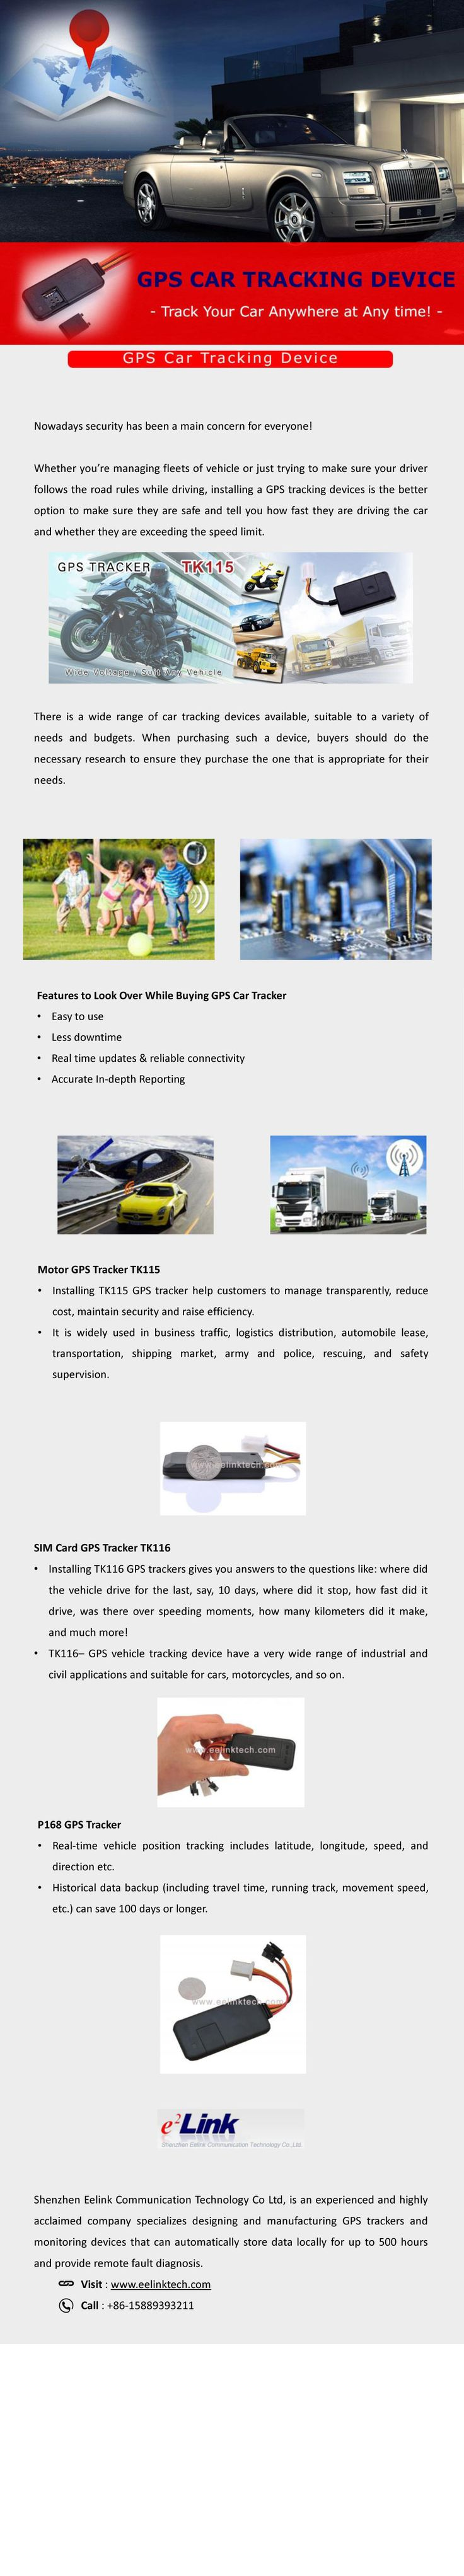 Gps vehicle tracking devices keep your car tracked shenzhen eelink communication technology co ltd offer a great range of personal and vehicle gps